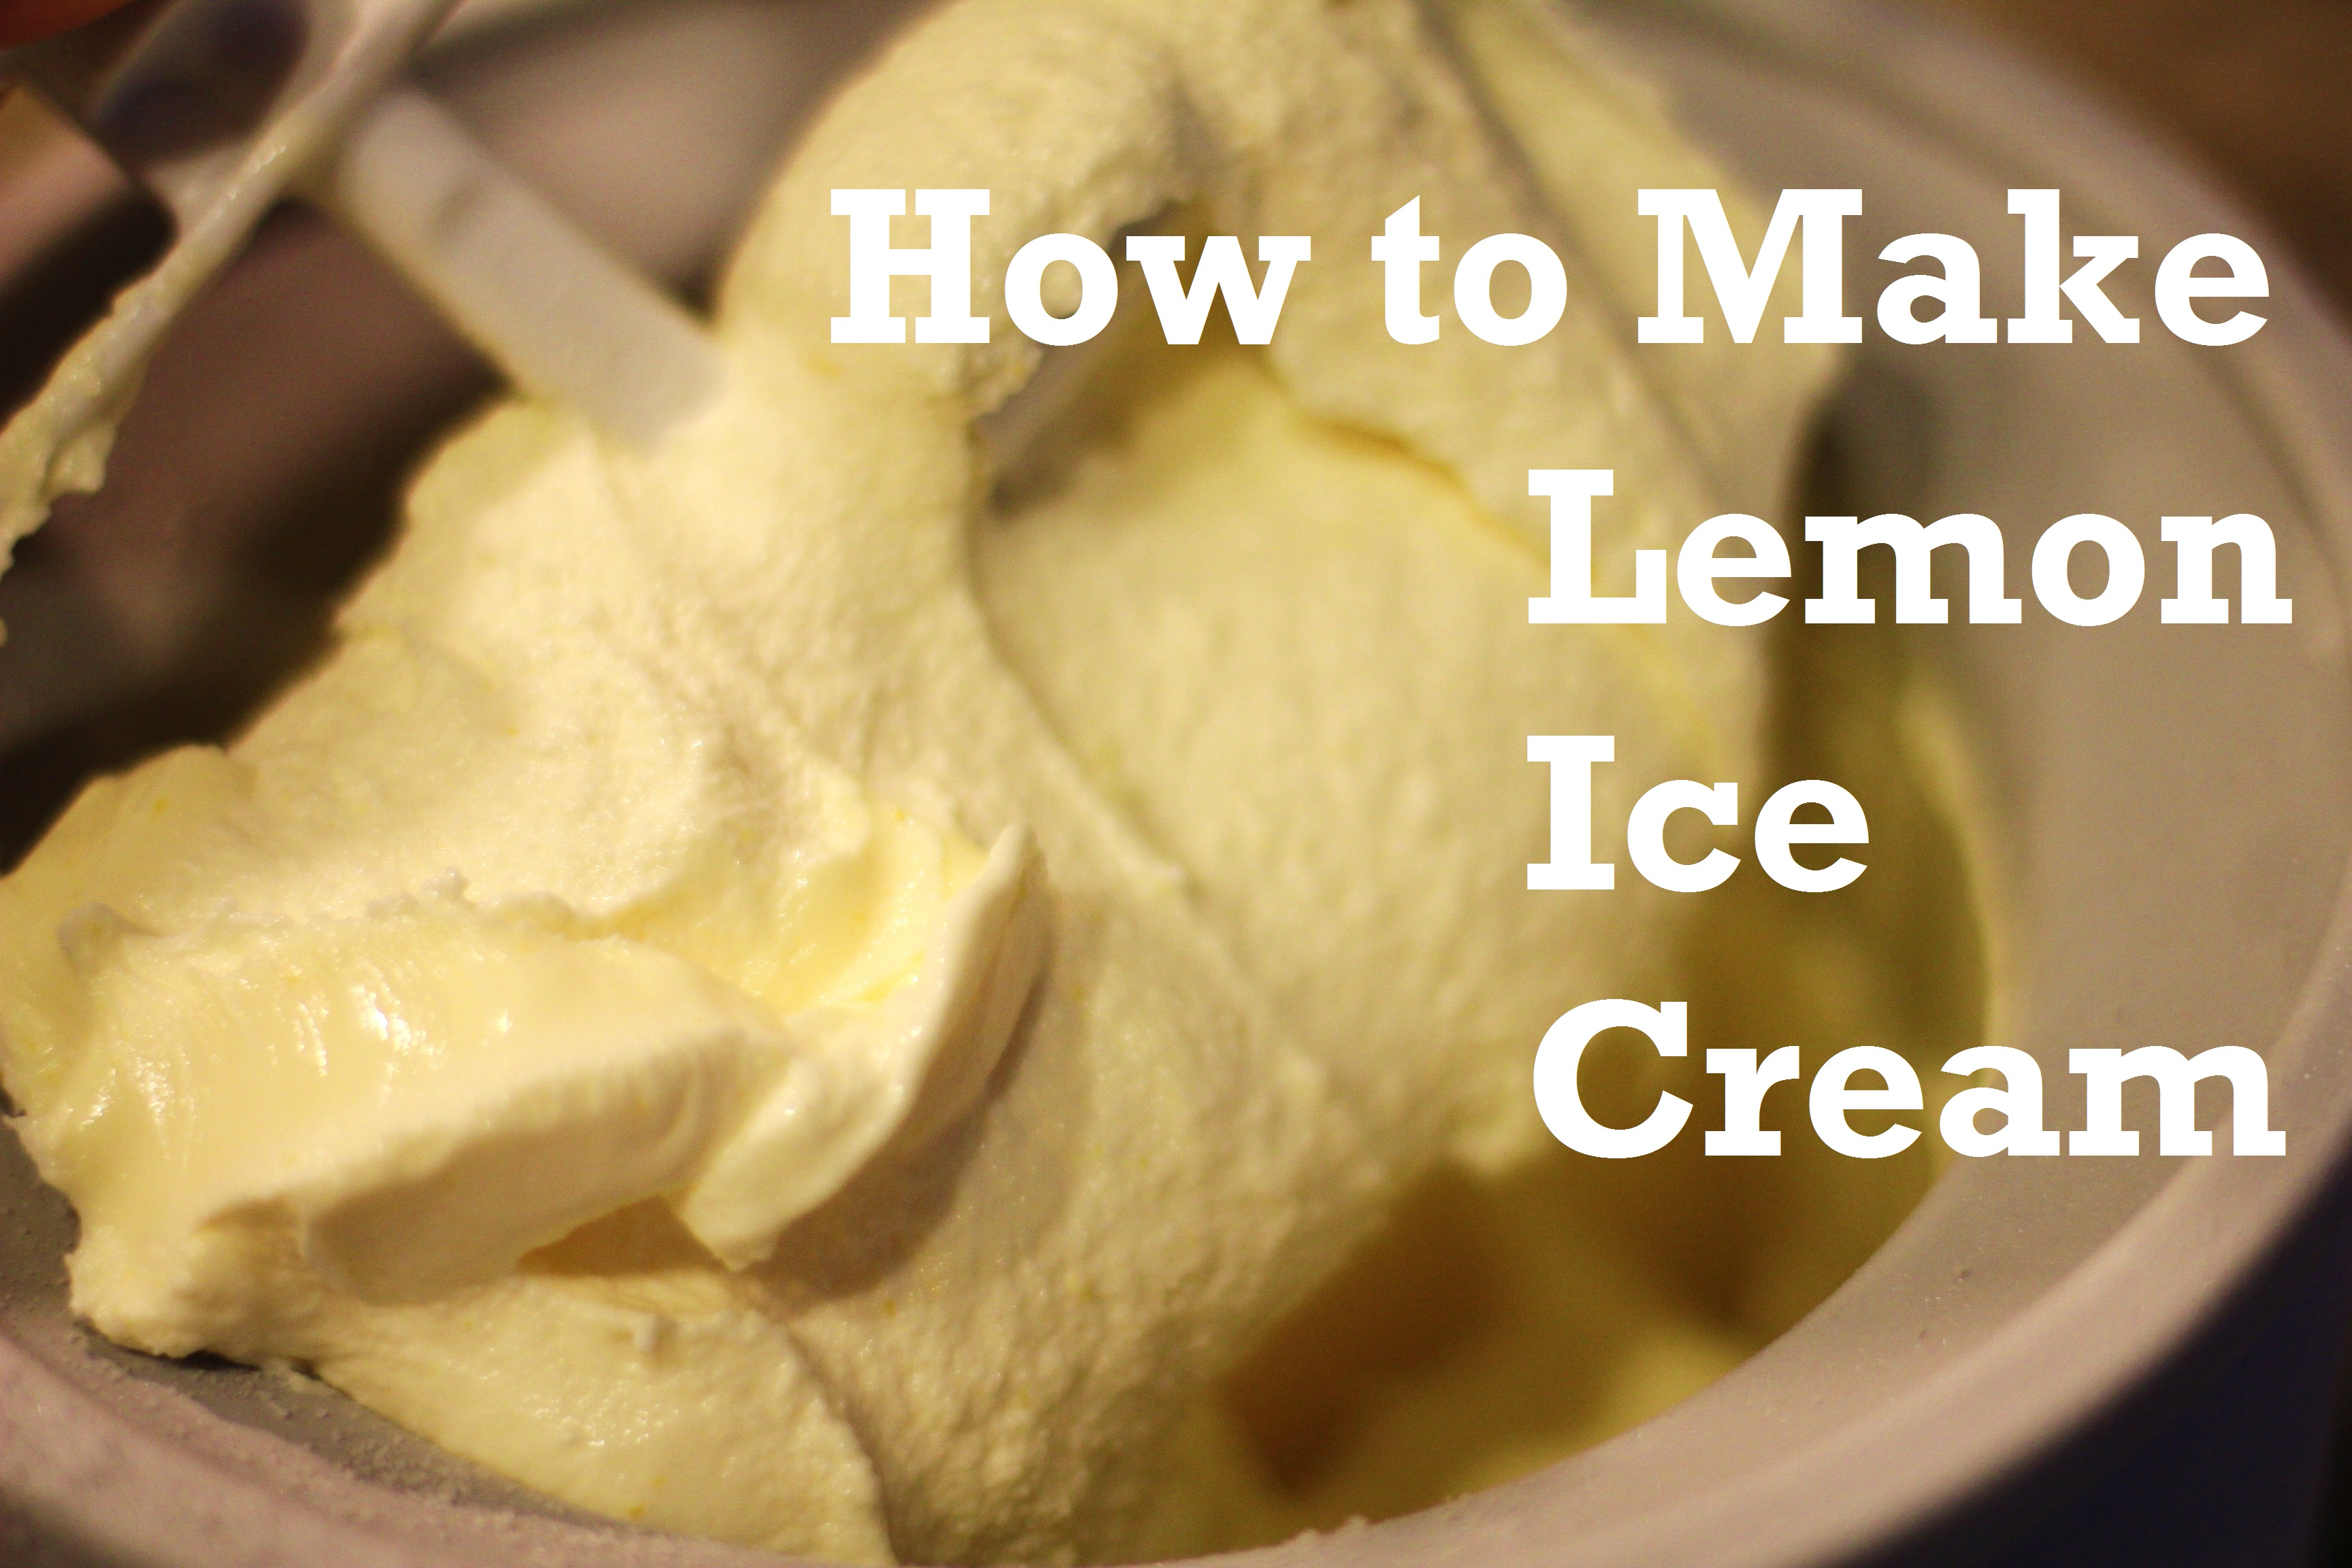 Recipe: How to Make Lemon Ice Cream